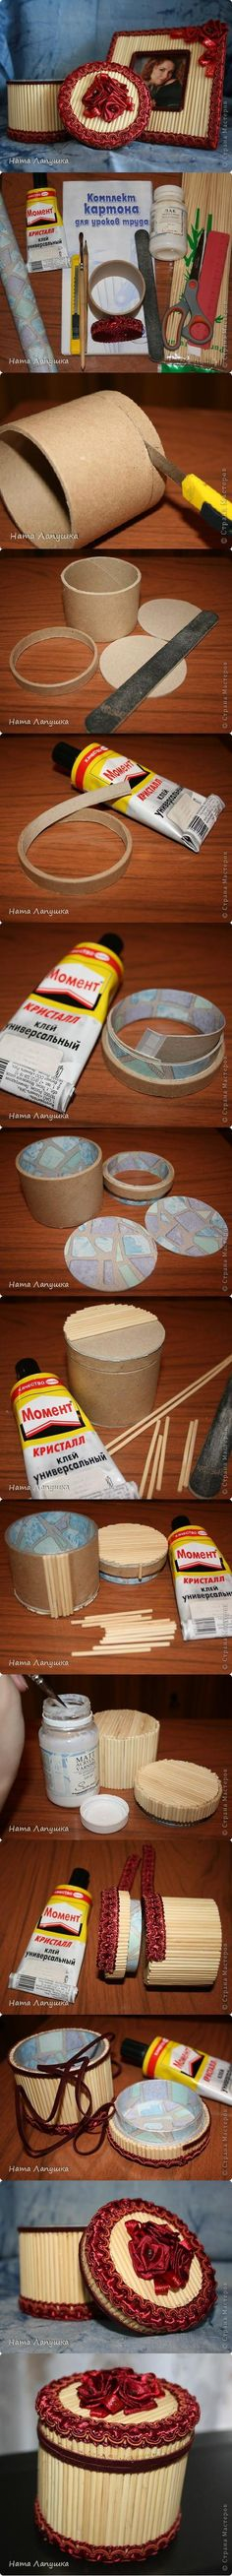 DIY Beautiful Round Box DIY Beautiful Round Box